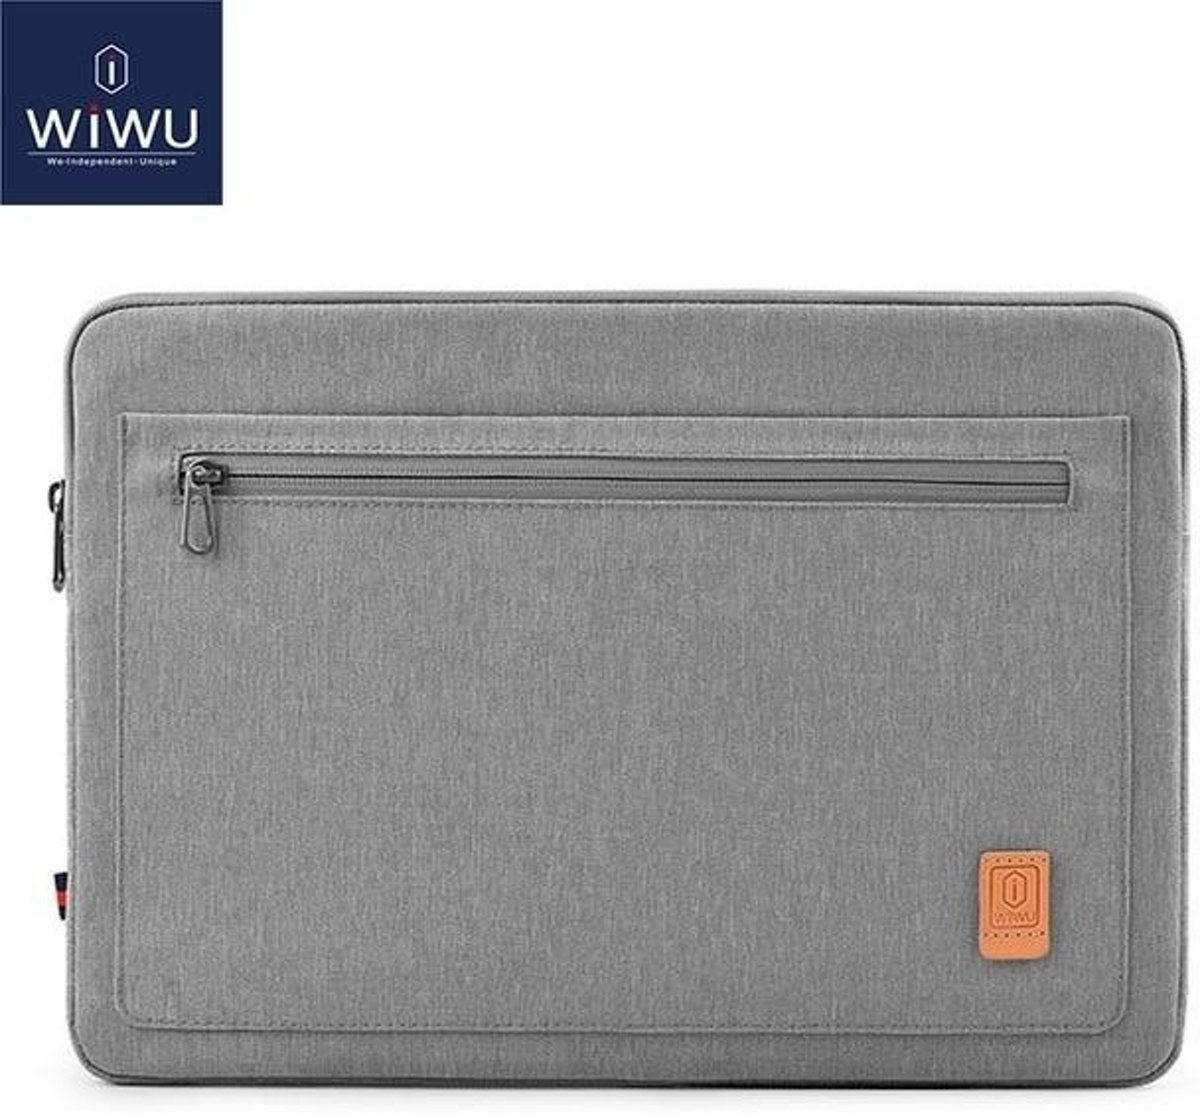 WIWU - 15,4 inch Pioneer Laptop & Macbook Sleeve - Grijs